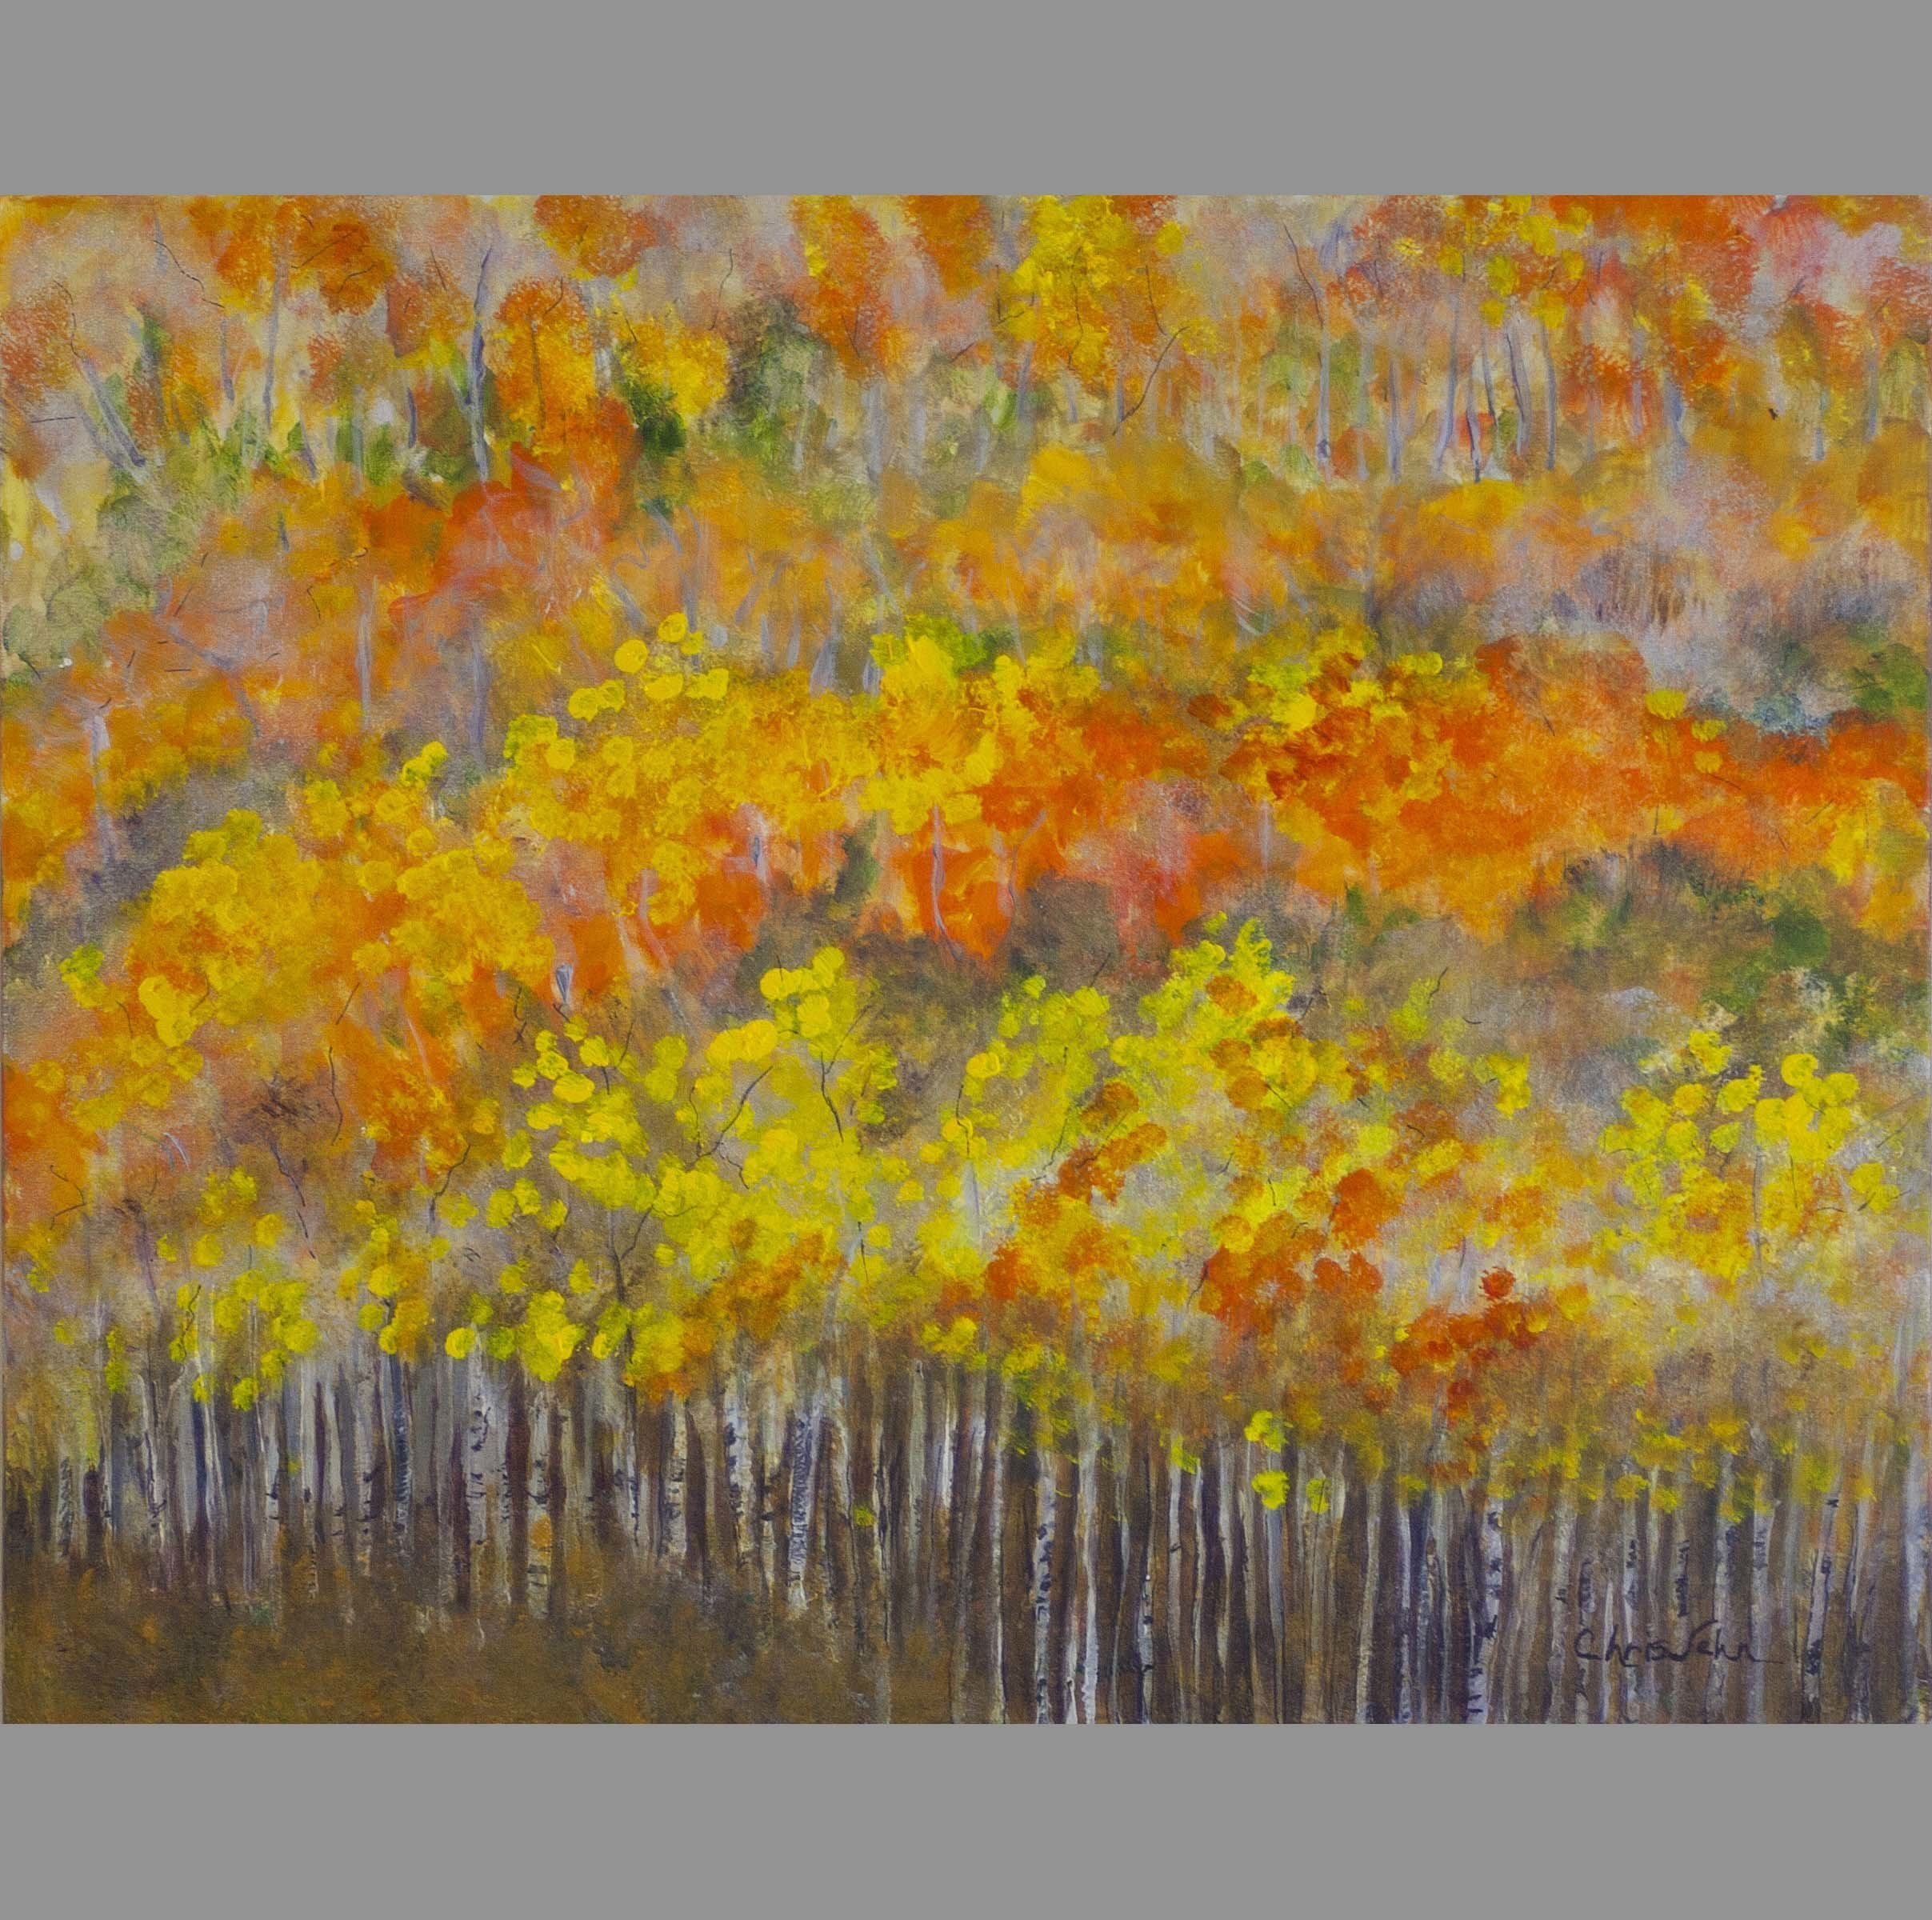 Chris Jehn: 'aspen mountain side', 2016 Acrylic Painting, Trees. In Colorado you often see panoramas of mountain sides with aspen trees. The colors and the layers are inspiring, and a challenge to paint. This is one of my favorite paintings. Original artwork by Chris Jehn...